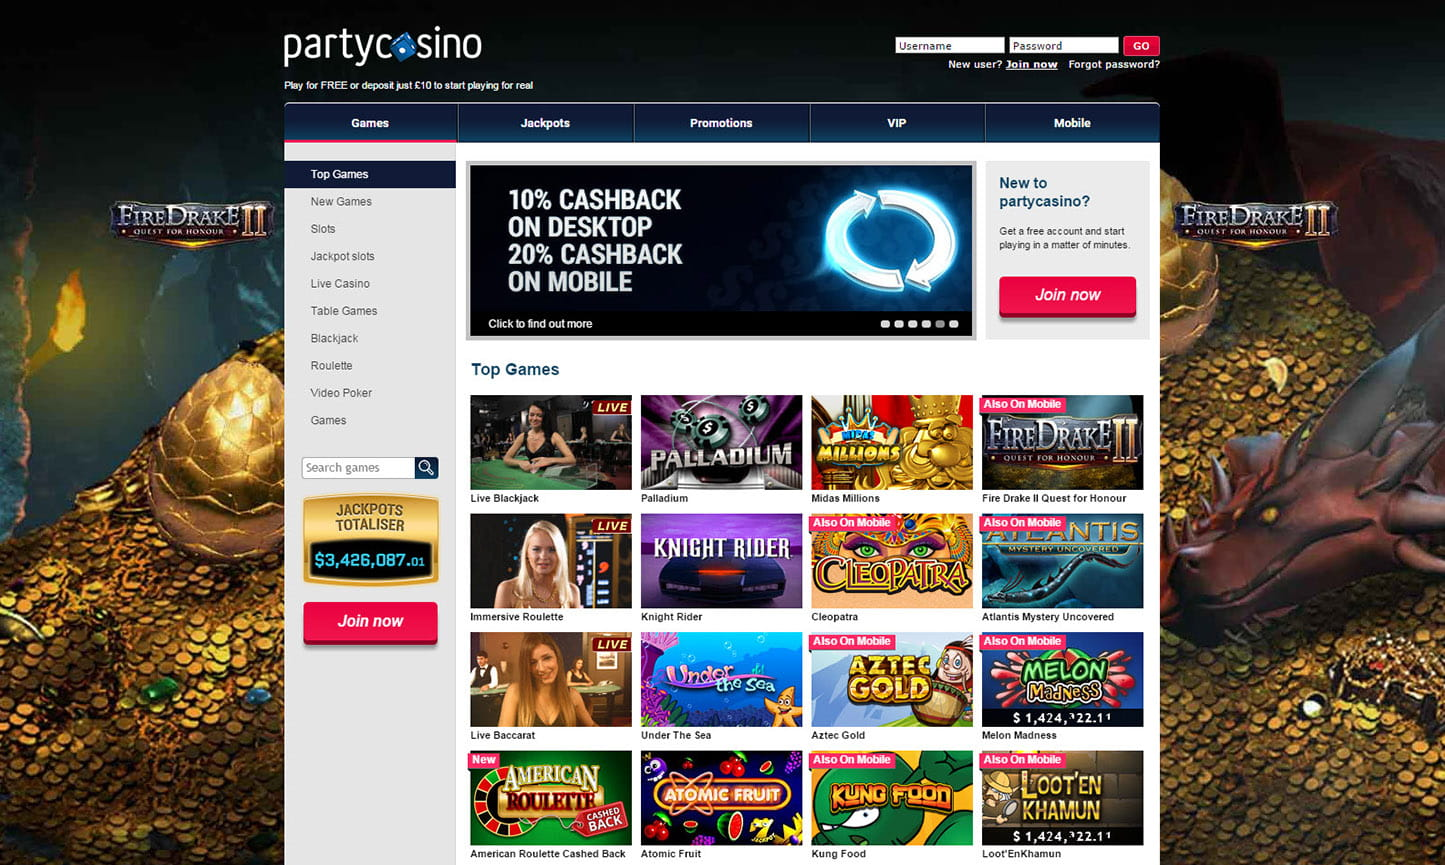 Party casino roulette online greedyhog gambling directory casino classifieds